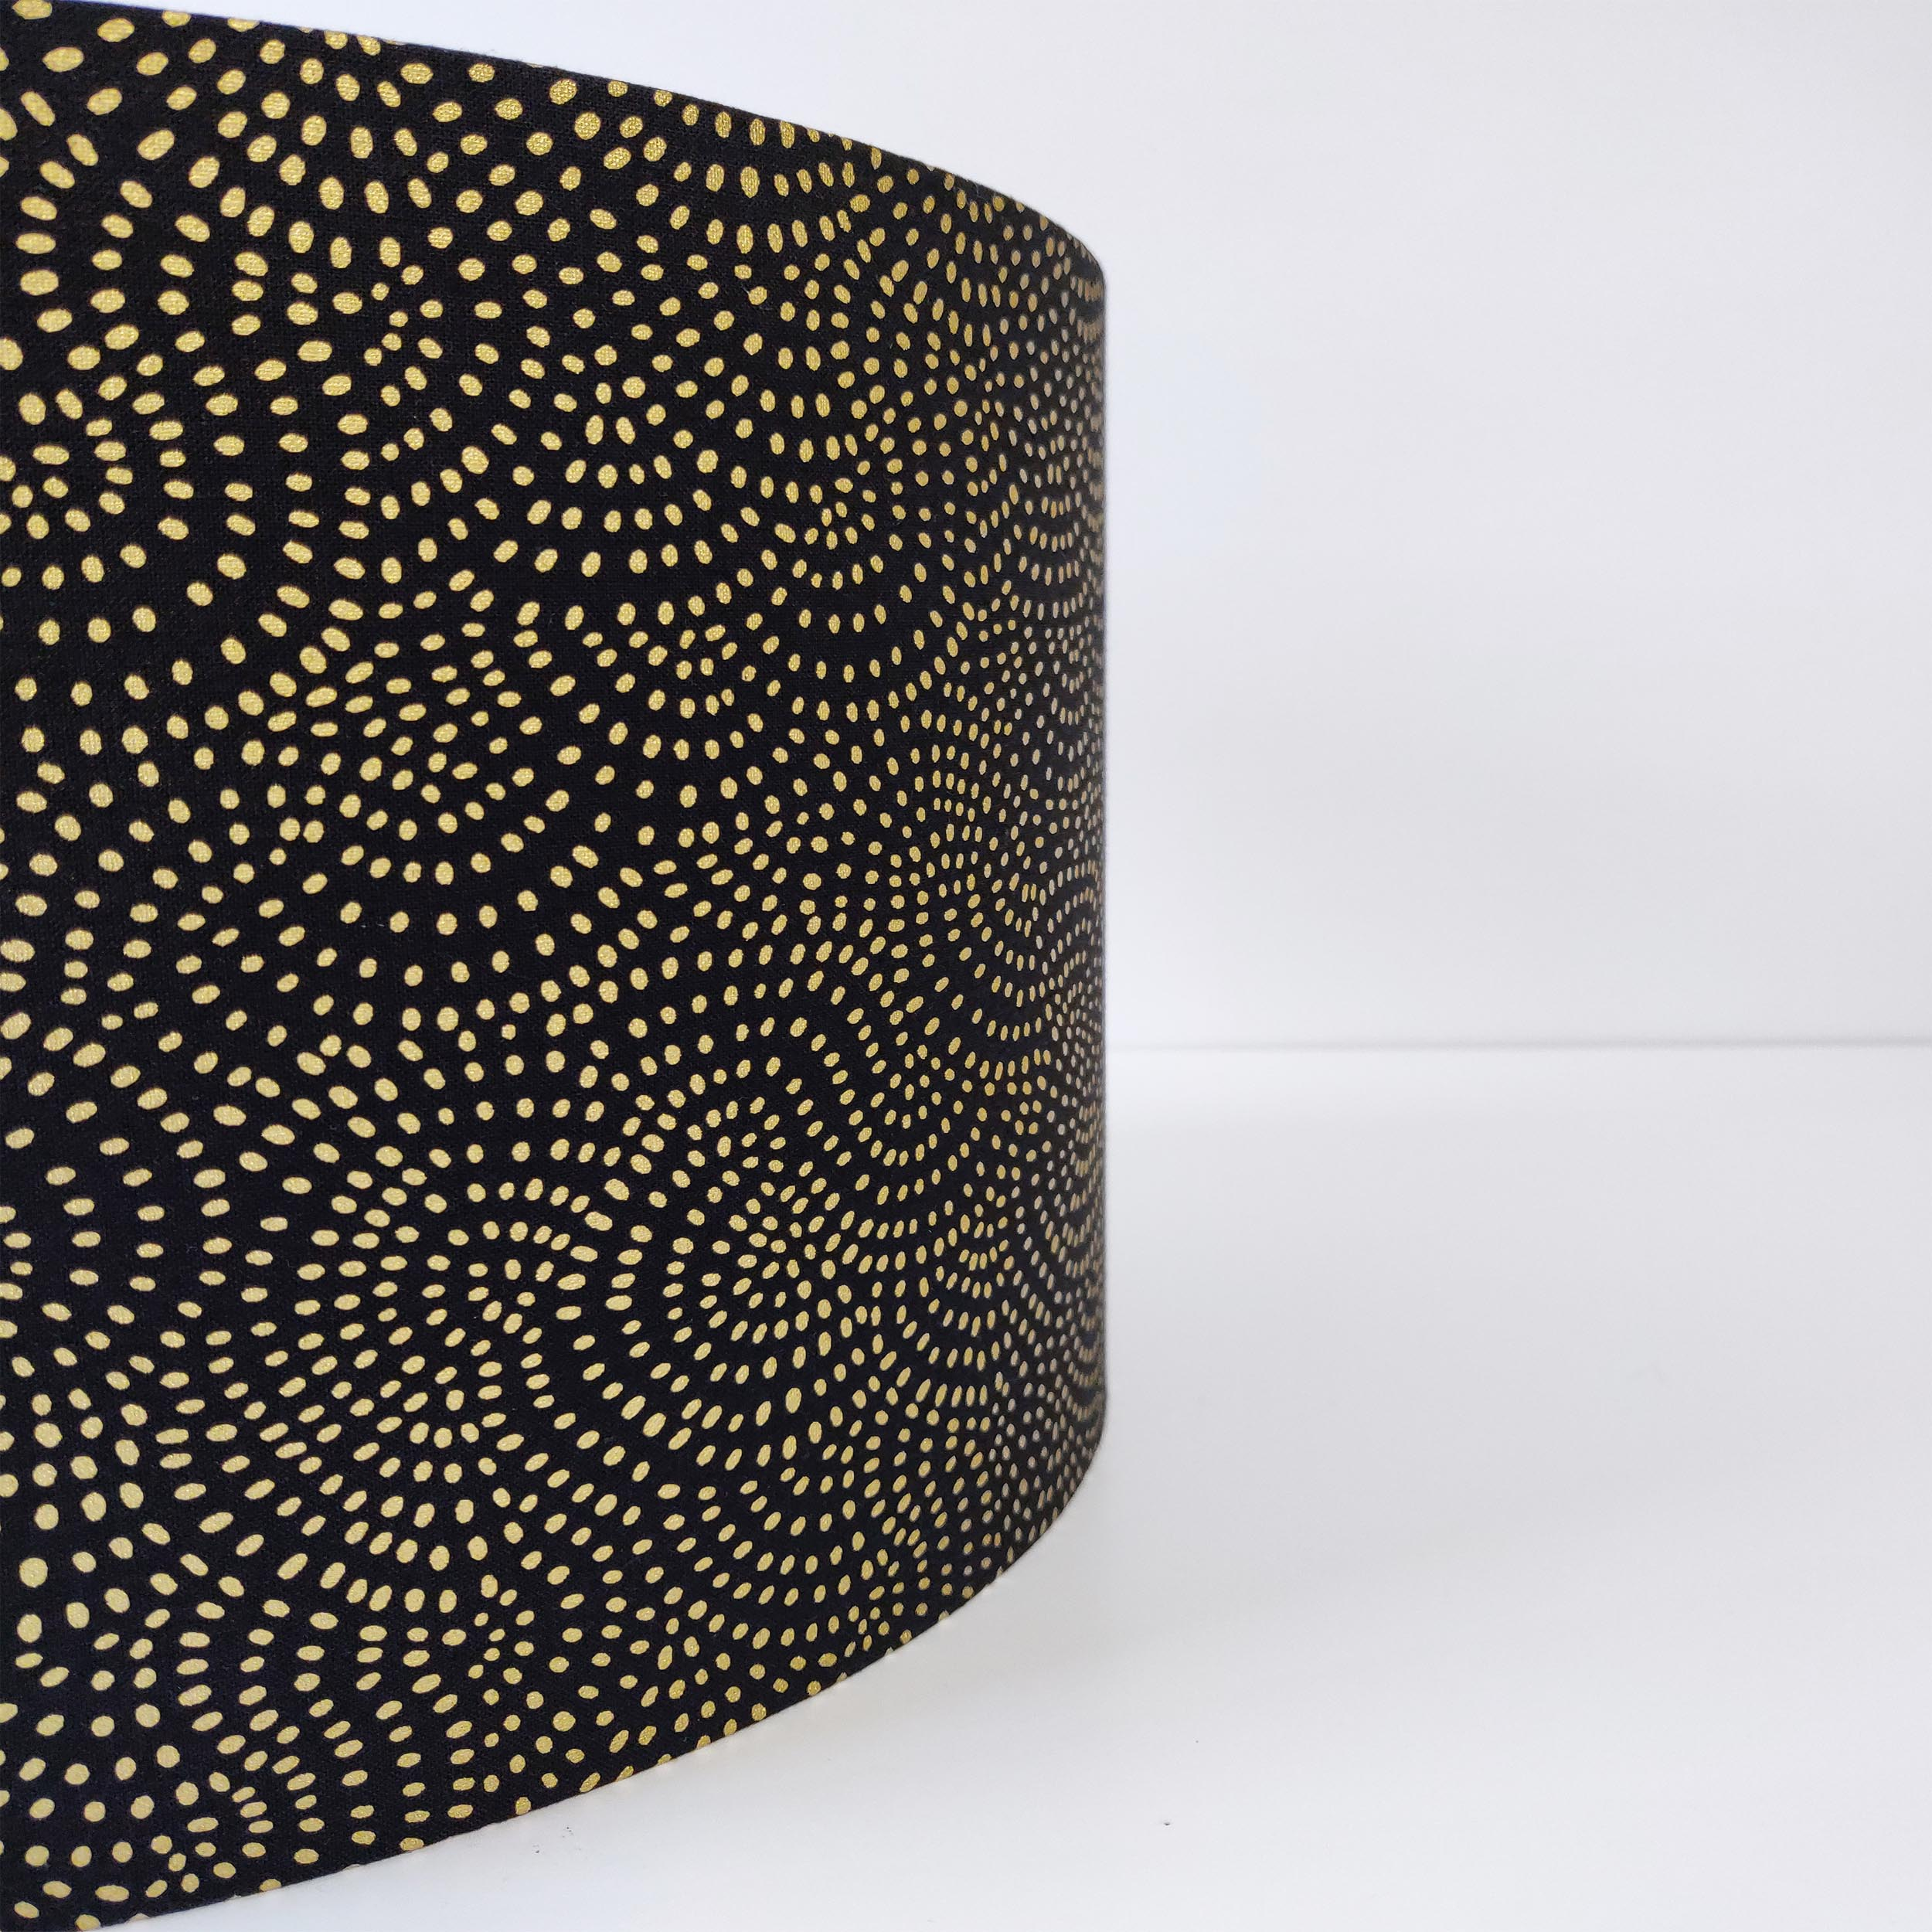 Black and Gold Swirls Lampshade with Gold Lining